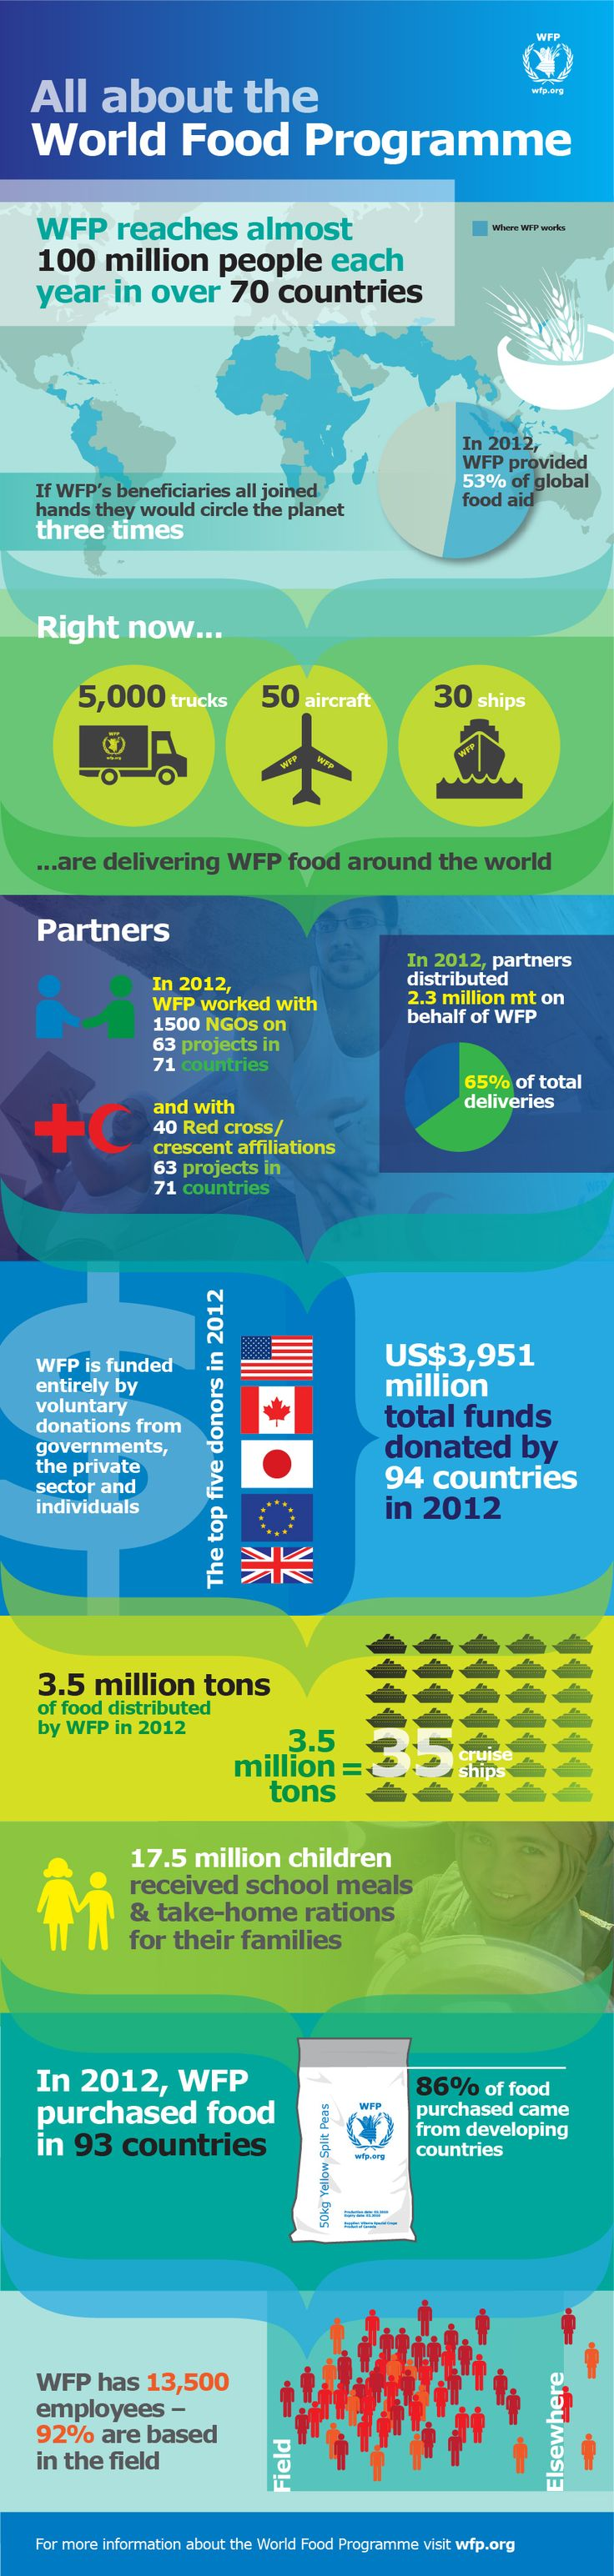 A bit busy but integrates people and vector - http://www.wfp.org/stories/all-about-world-food-programme-infographic